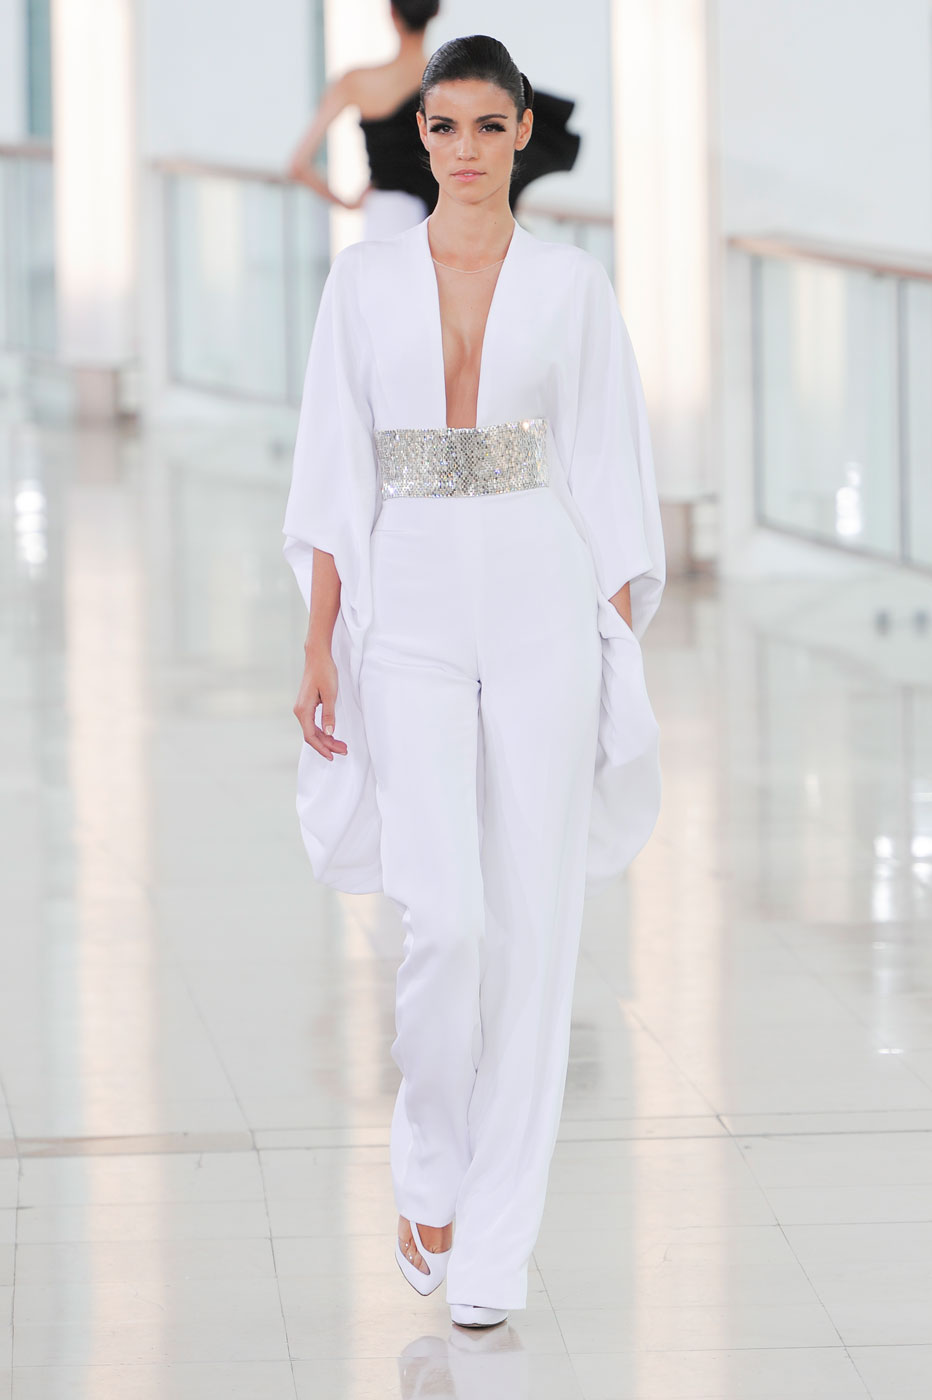 stephane-rolland-fashion-runway-show-haute-couture-paris-spring-2015-the-impression-13